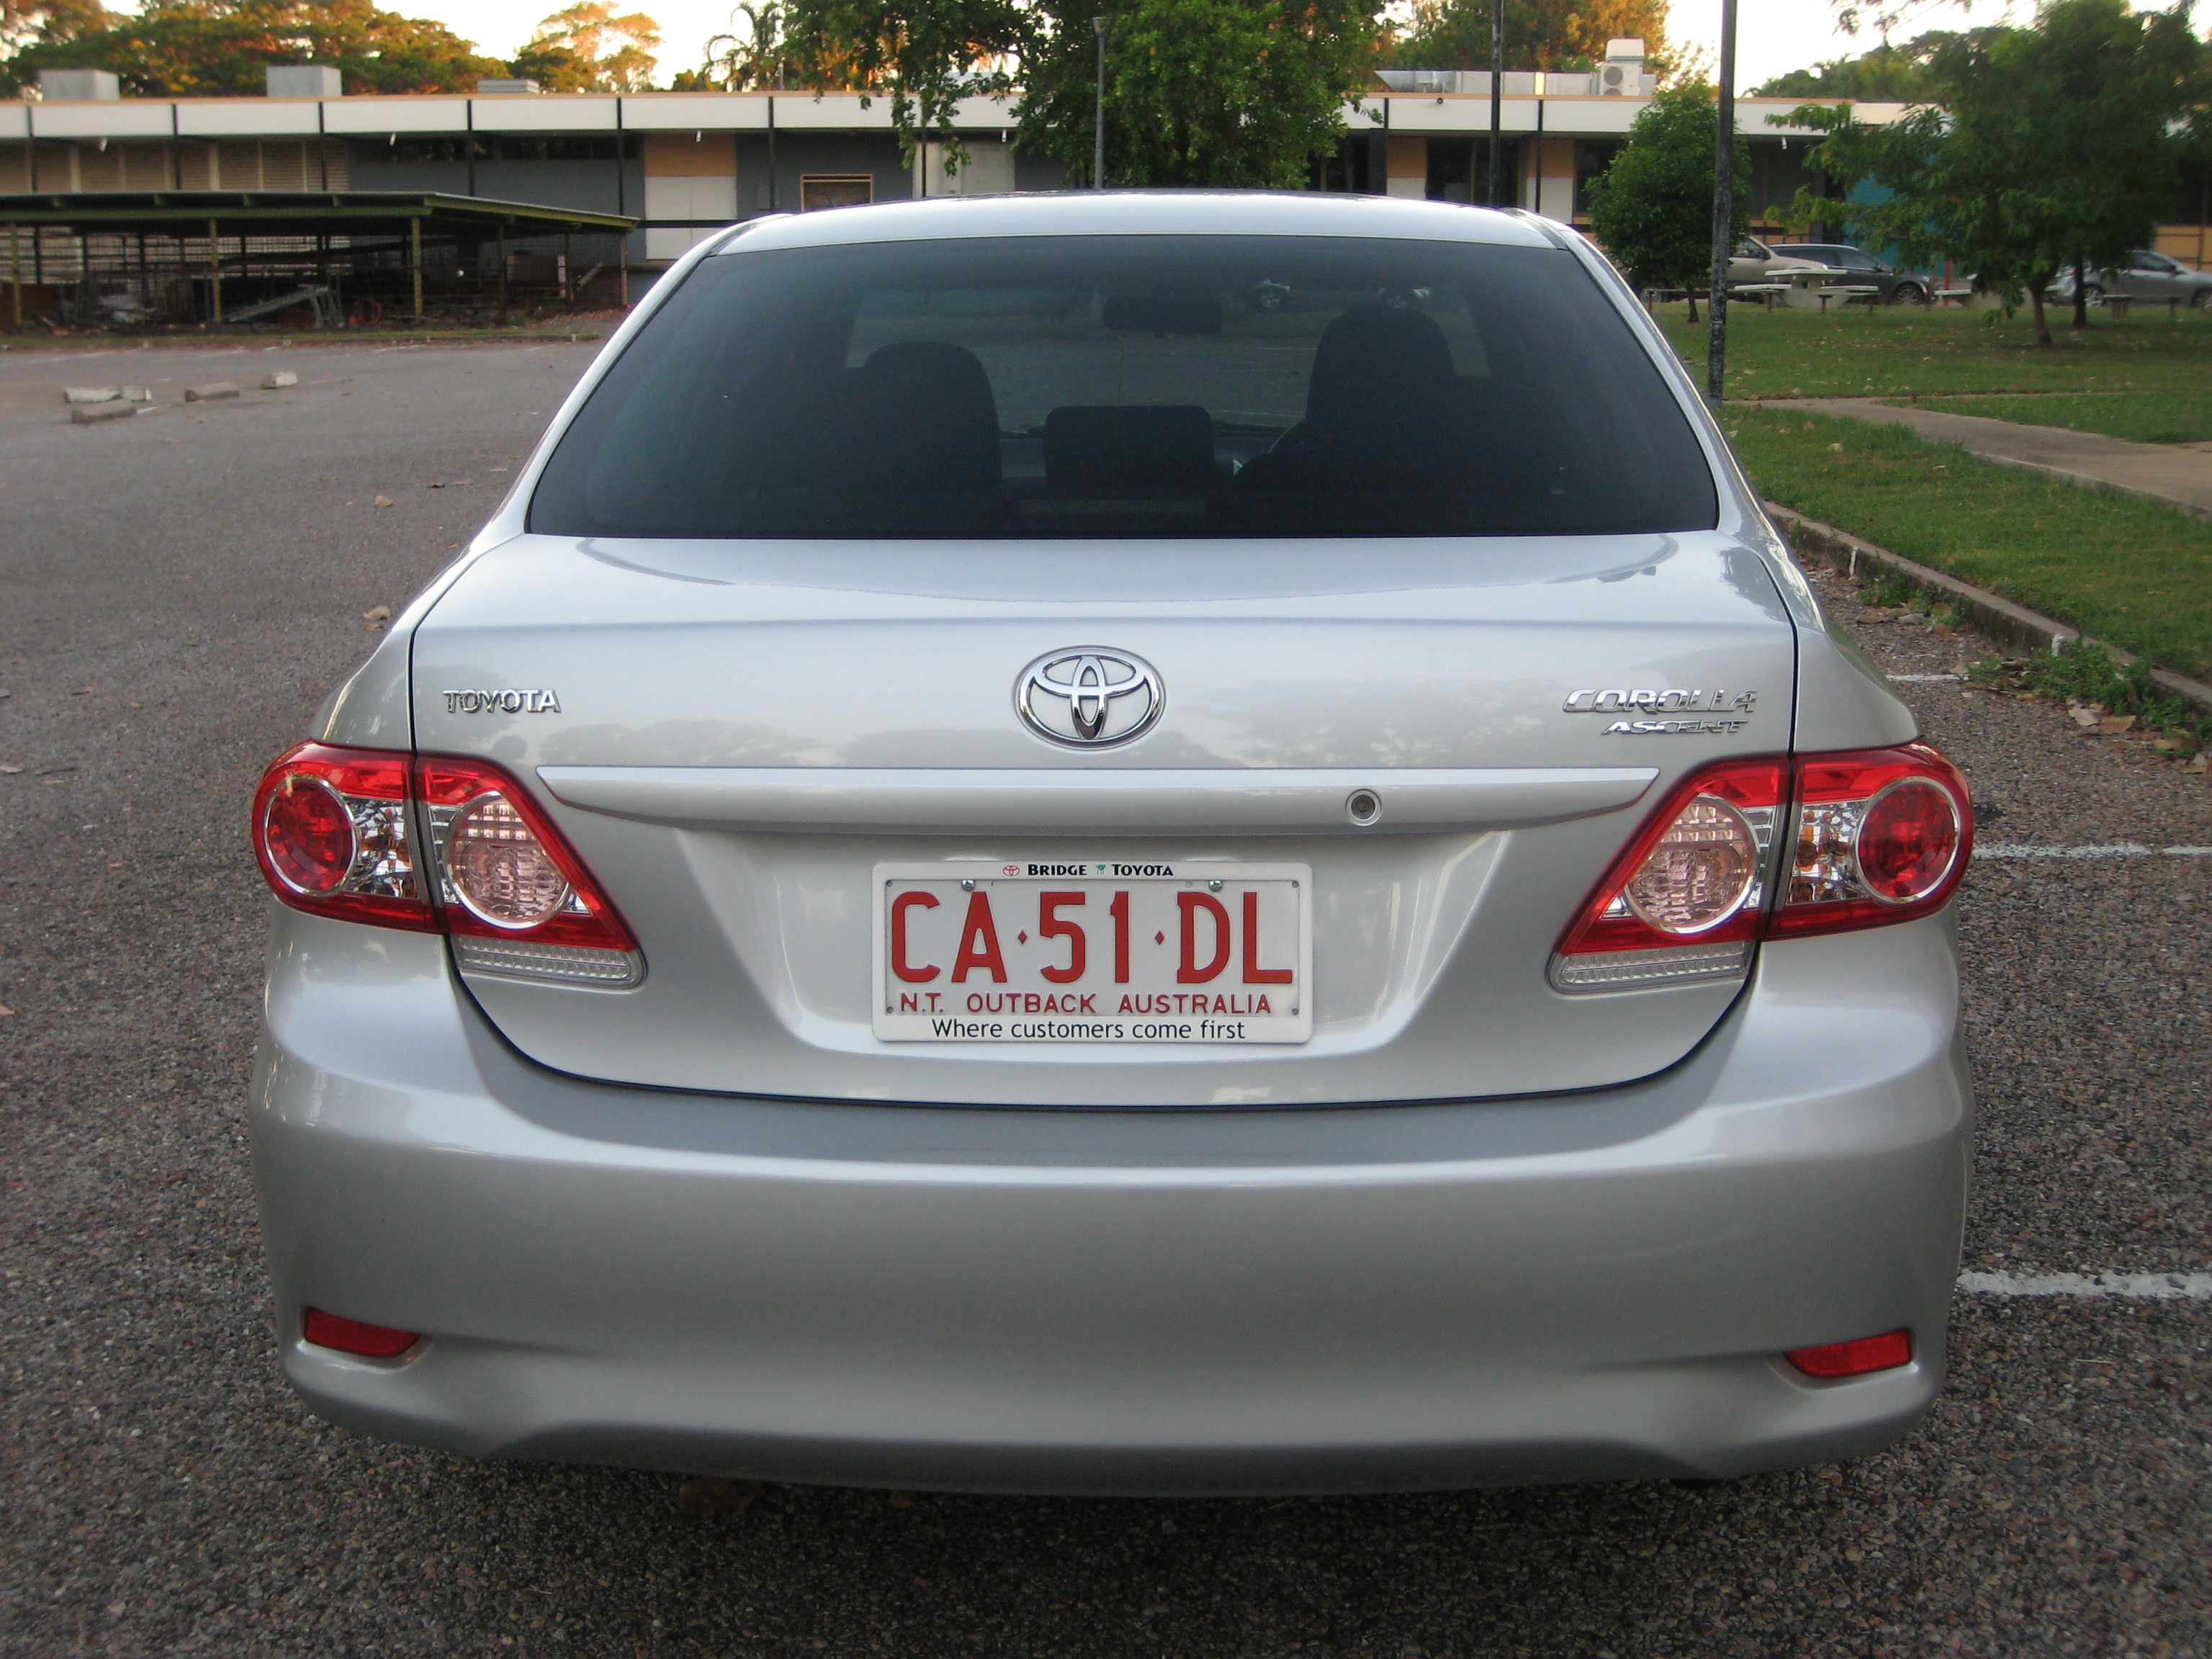 #663E3B 2012 Toyota Corolla Ascent ZRE152R MY11 Car Sales NT: Darwin Highly Rated 9479 Car Air Conditioning Repairs Geelong wallpapers with 3072x2304 px on helpvideos.info - Air Conditioners, Air Coolers and more